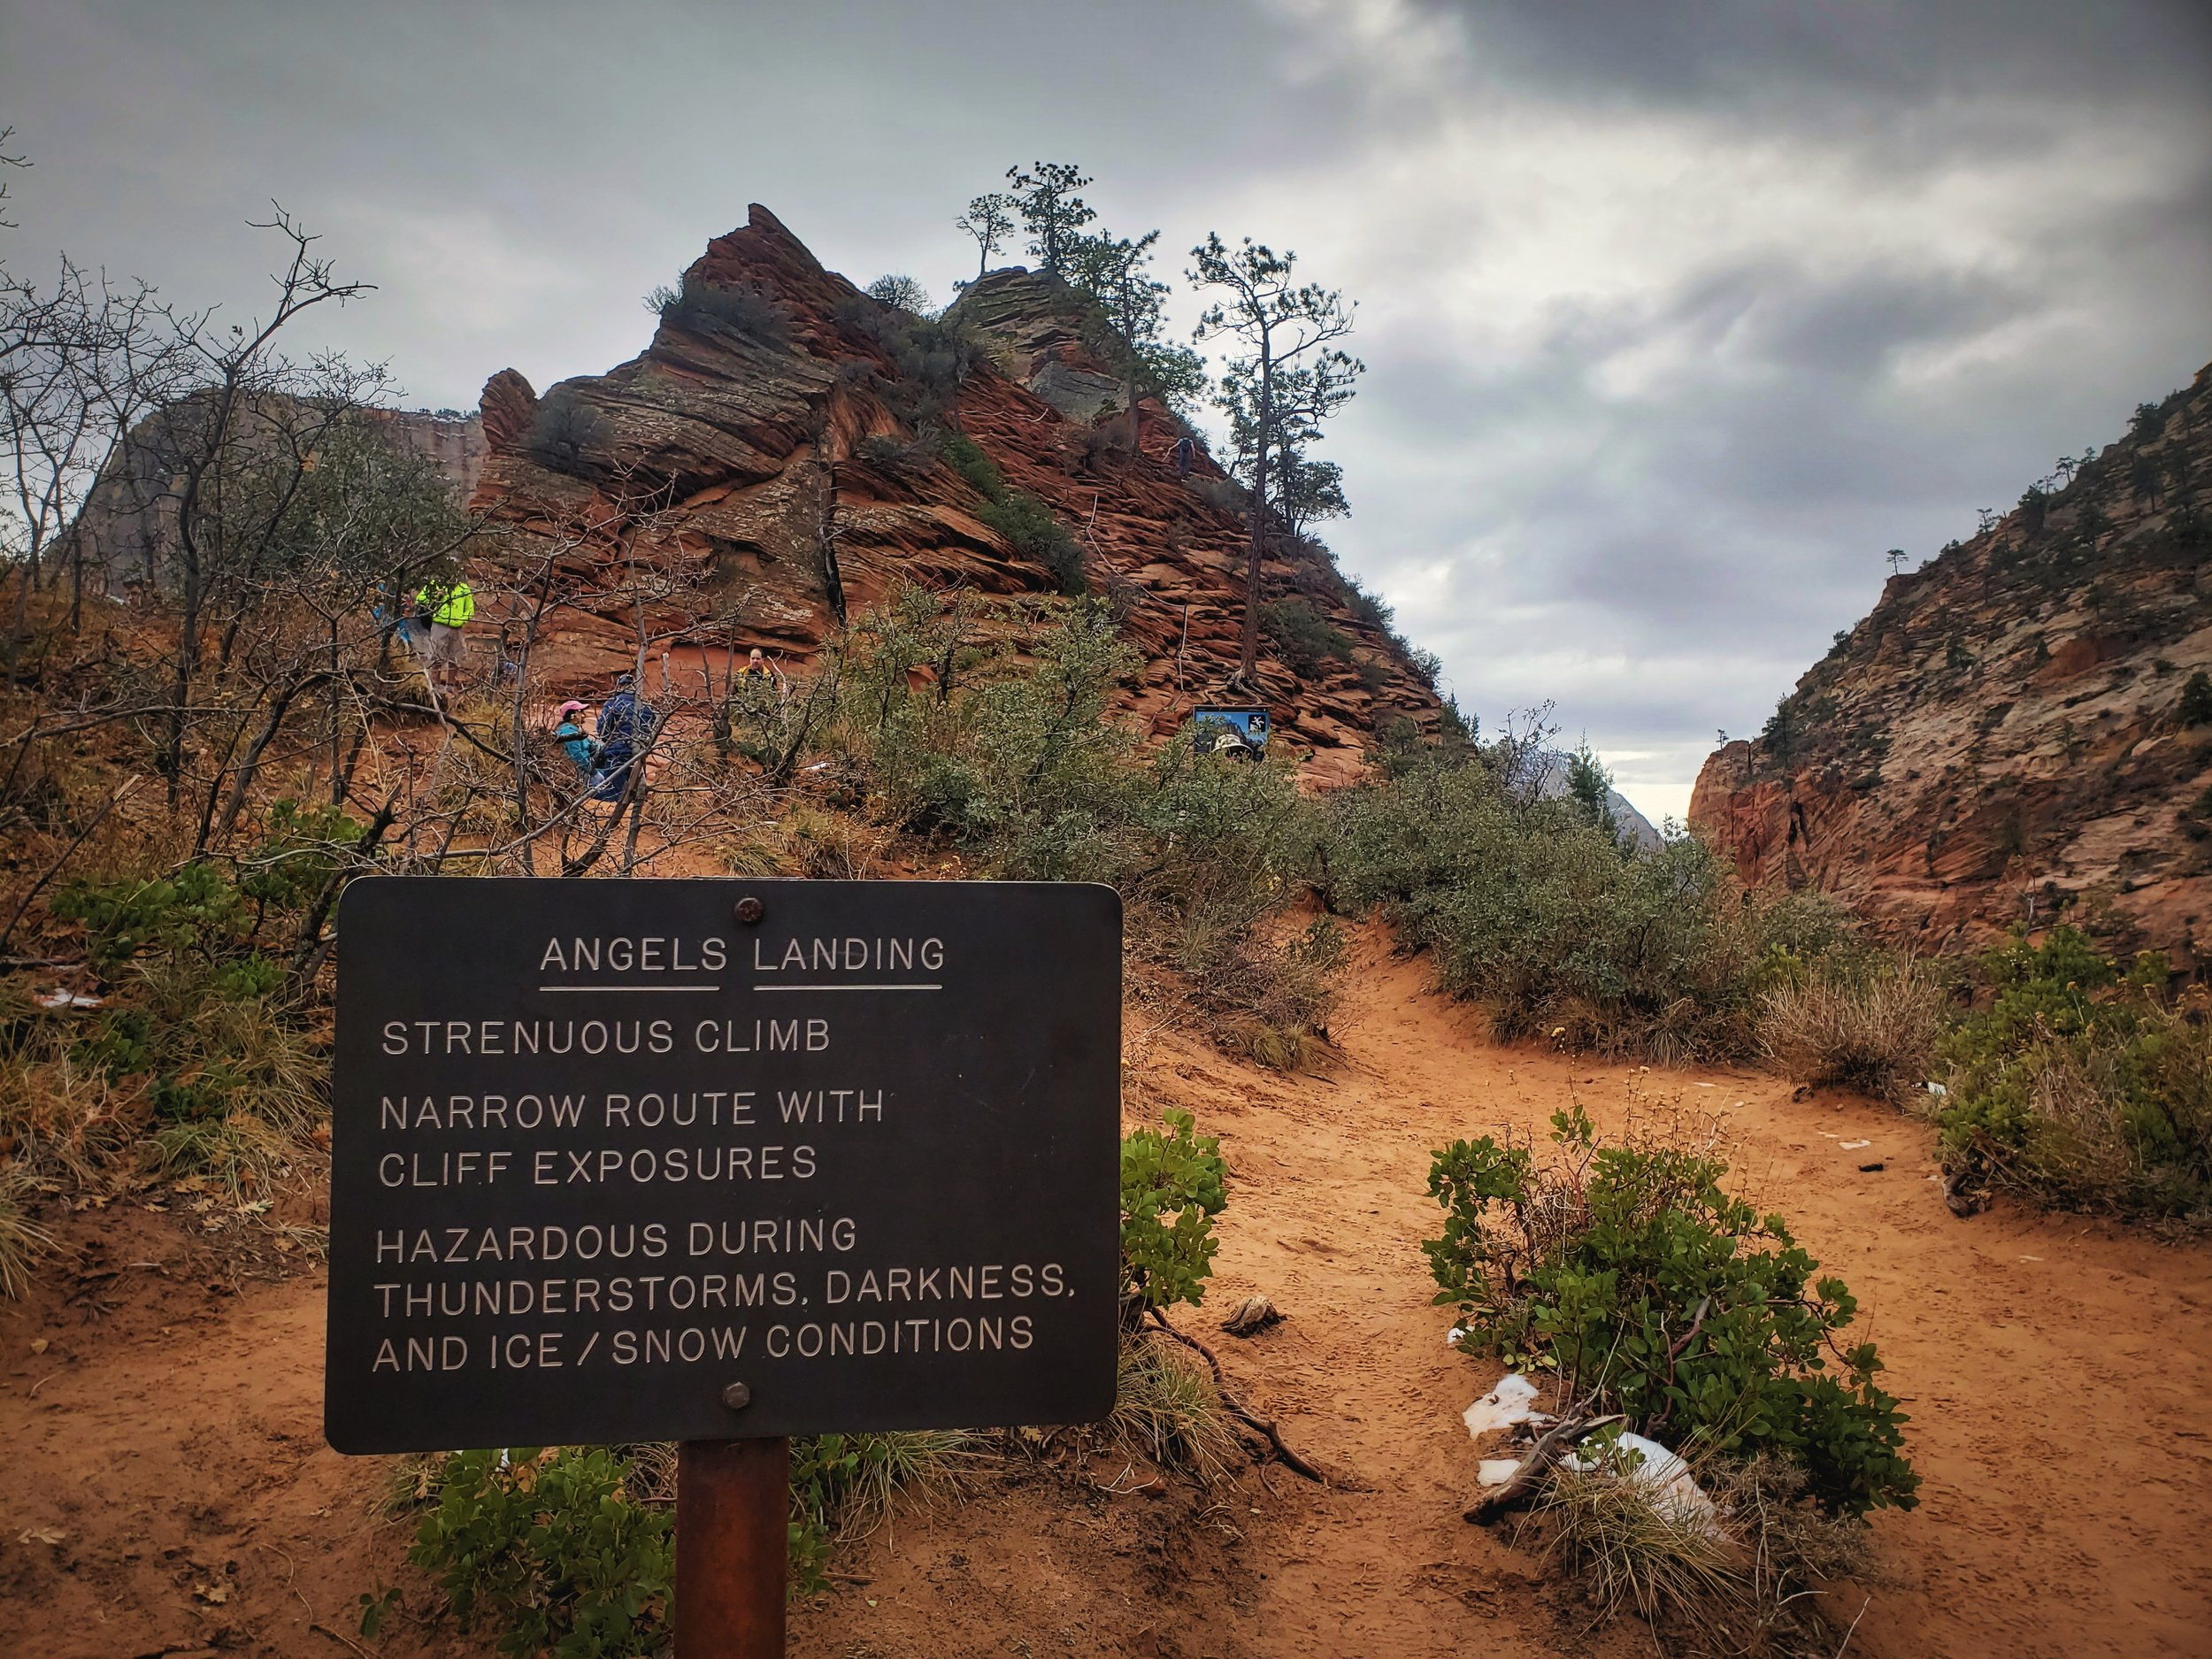 This sign greets you before the chained portion of Angels Landing. Watch for icy conditions in winter.